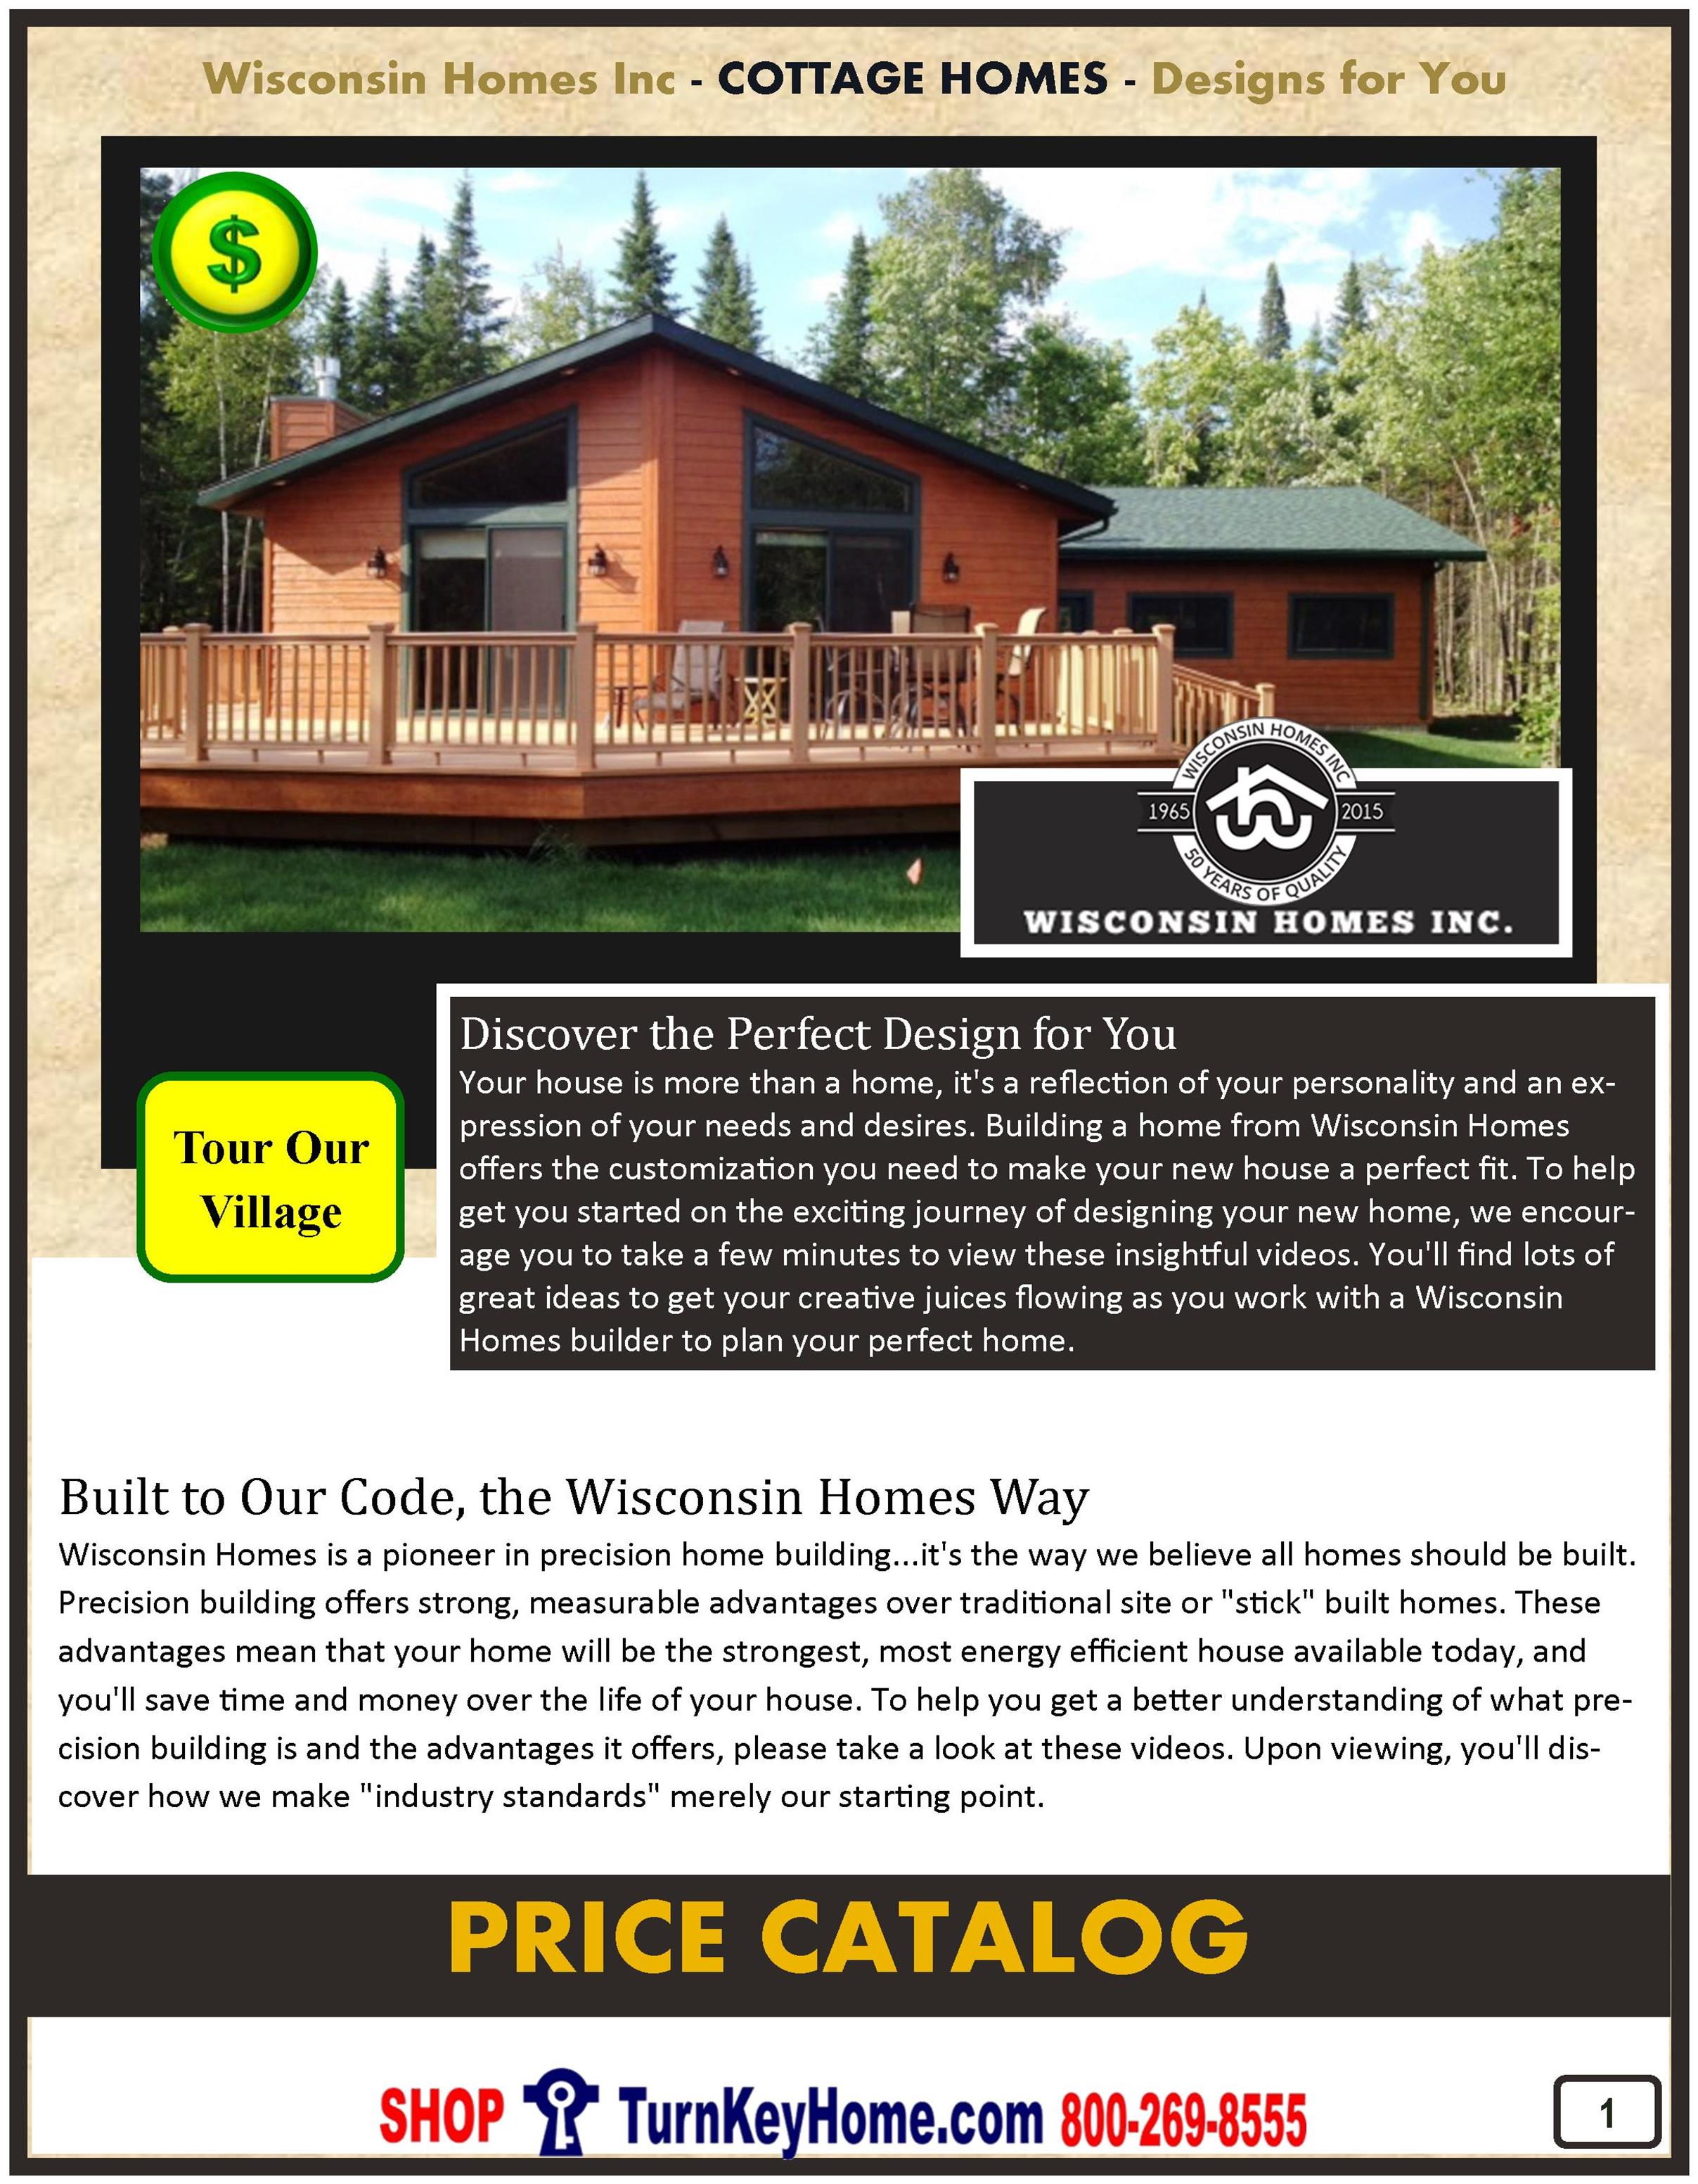 Cottage Home Price Catalog: Wisconsin Homes Modular Homes